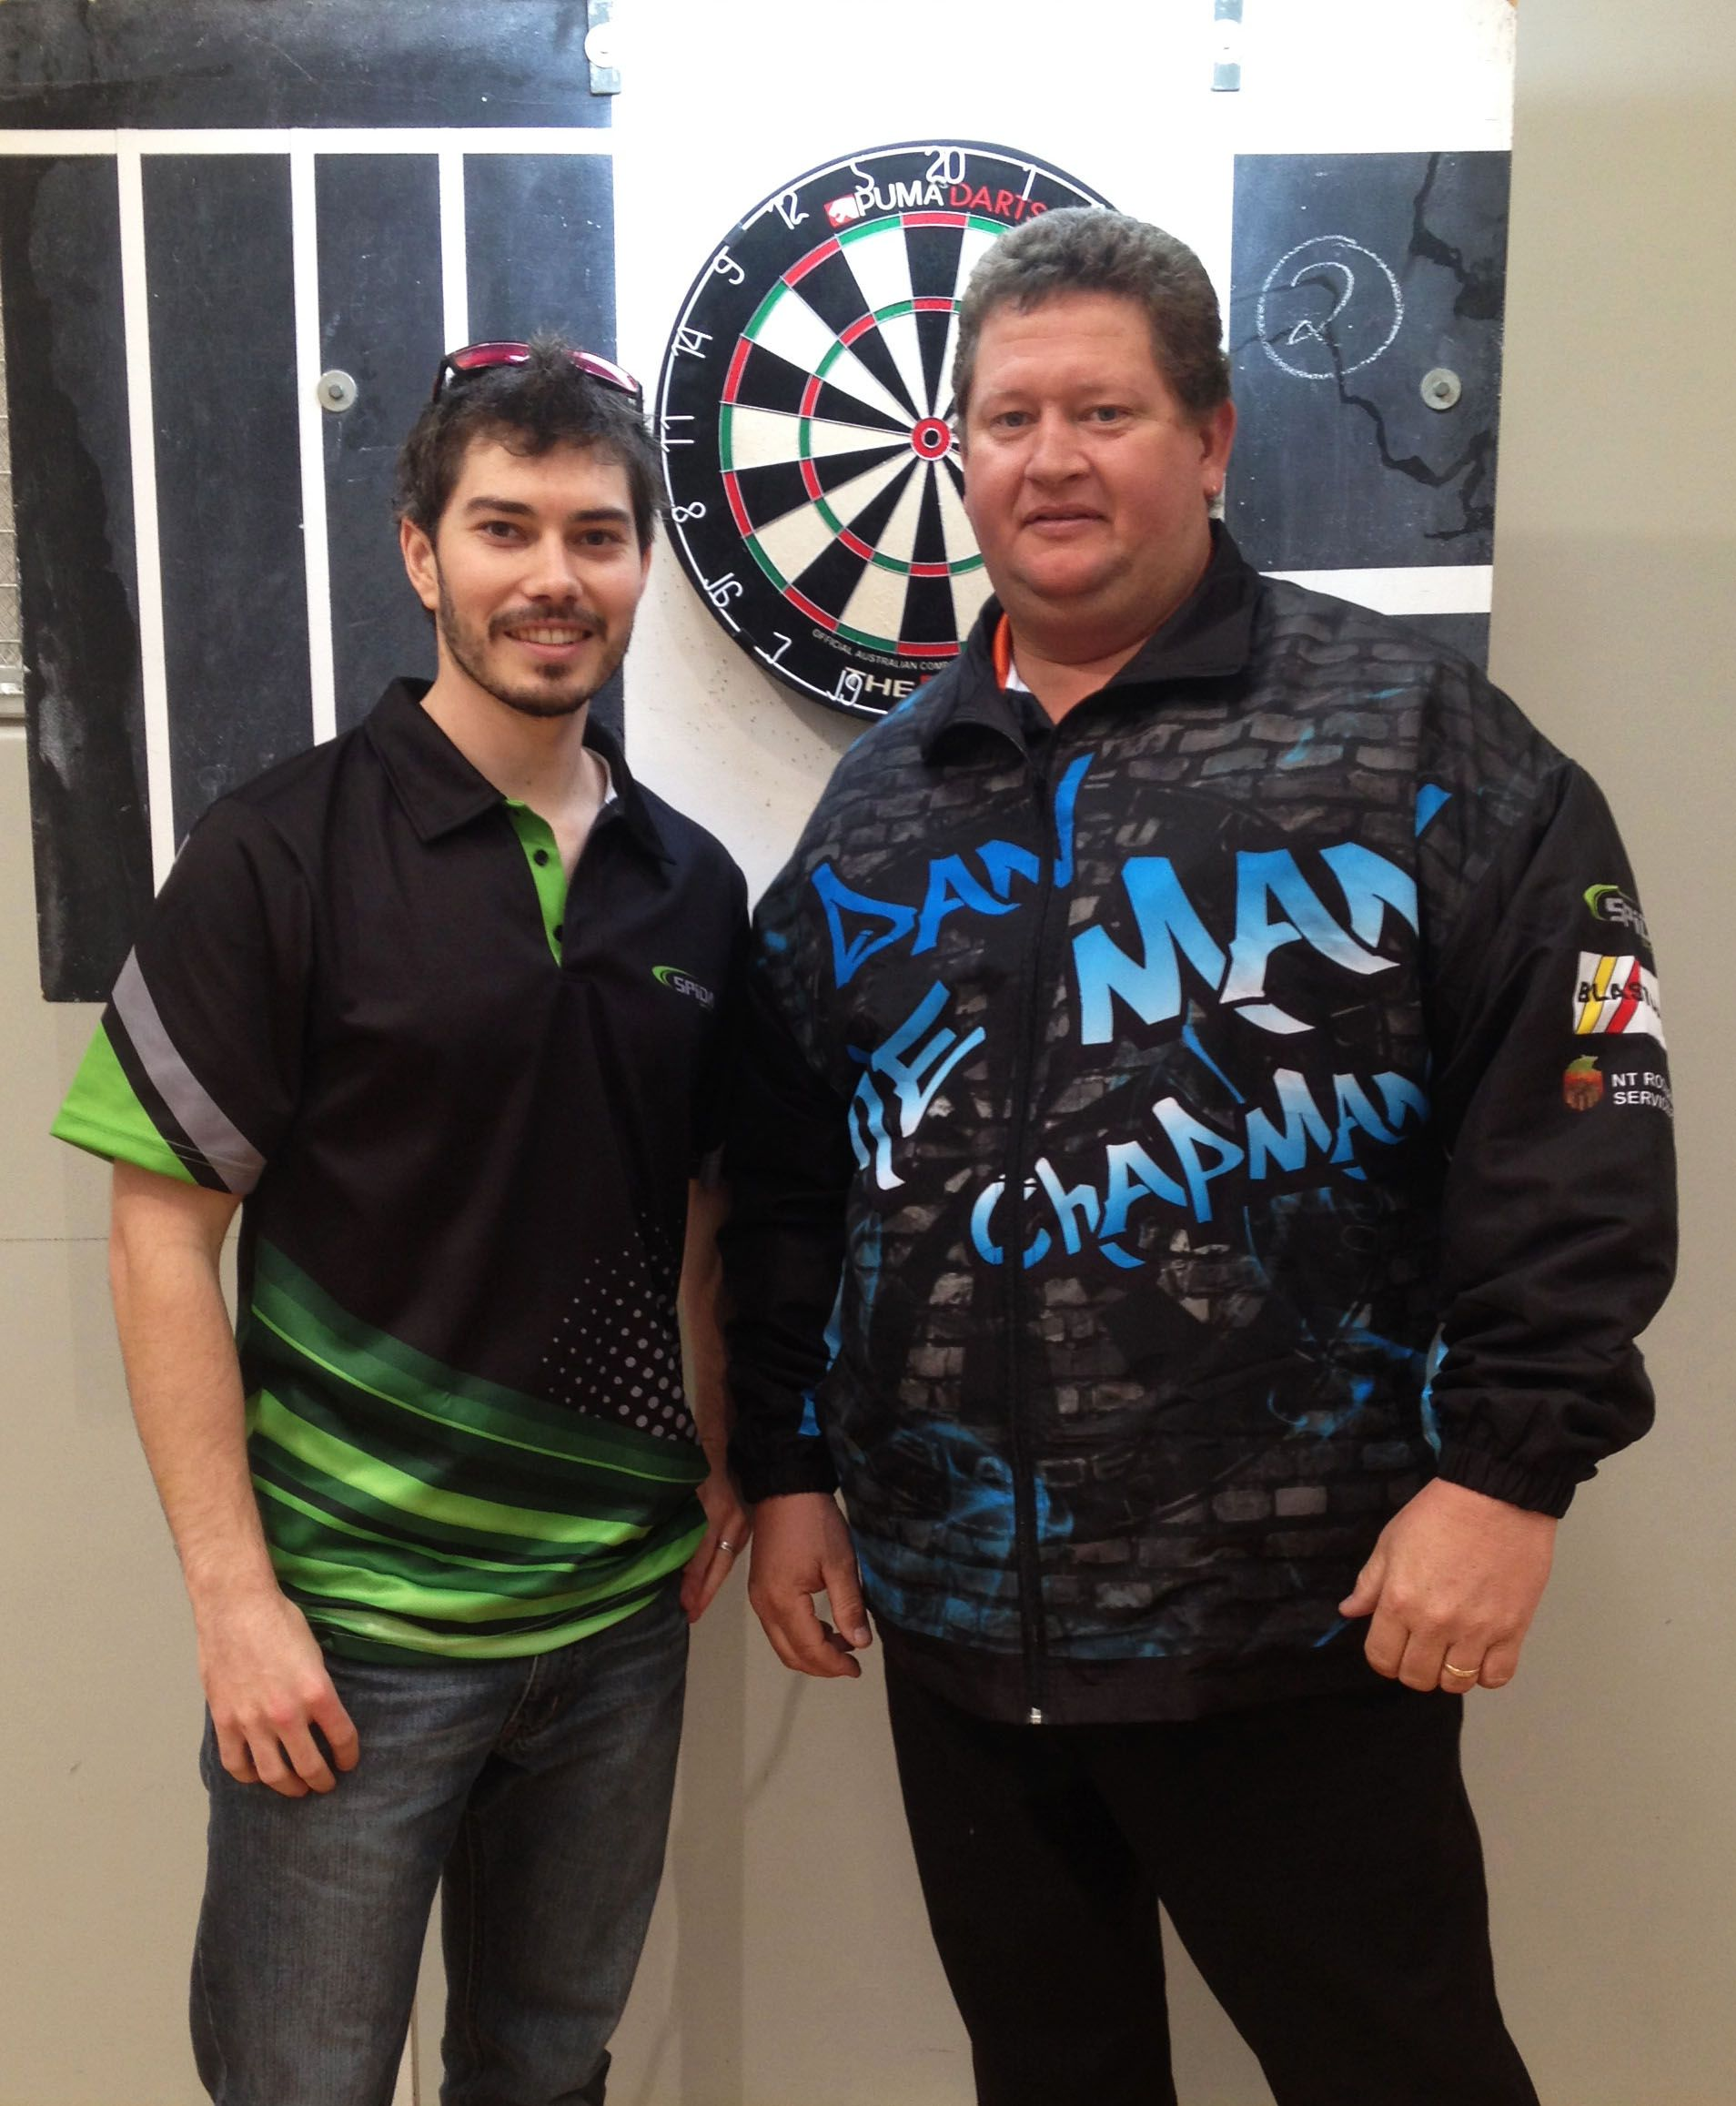 Dart shirt design your own - You Can Order Personalised Darts Shirts Or Can Even Customise Your Own Dart Shirts Designs